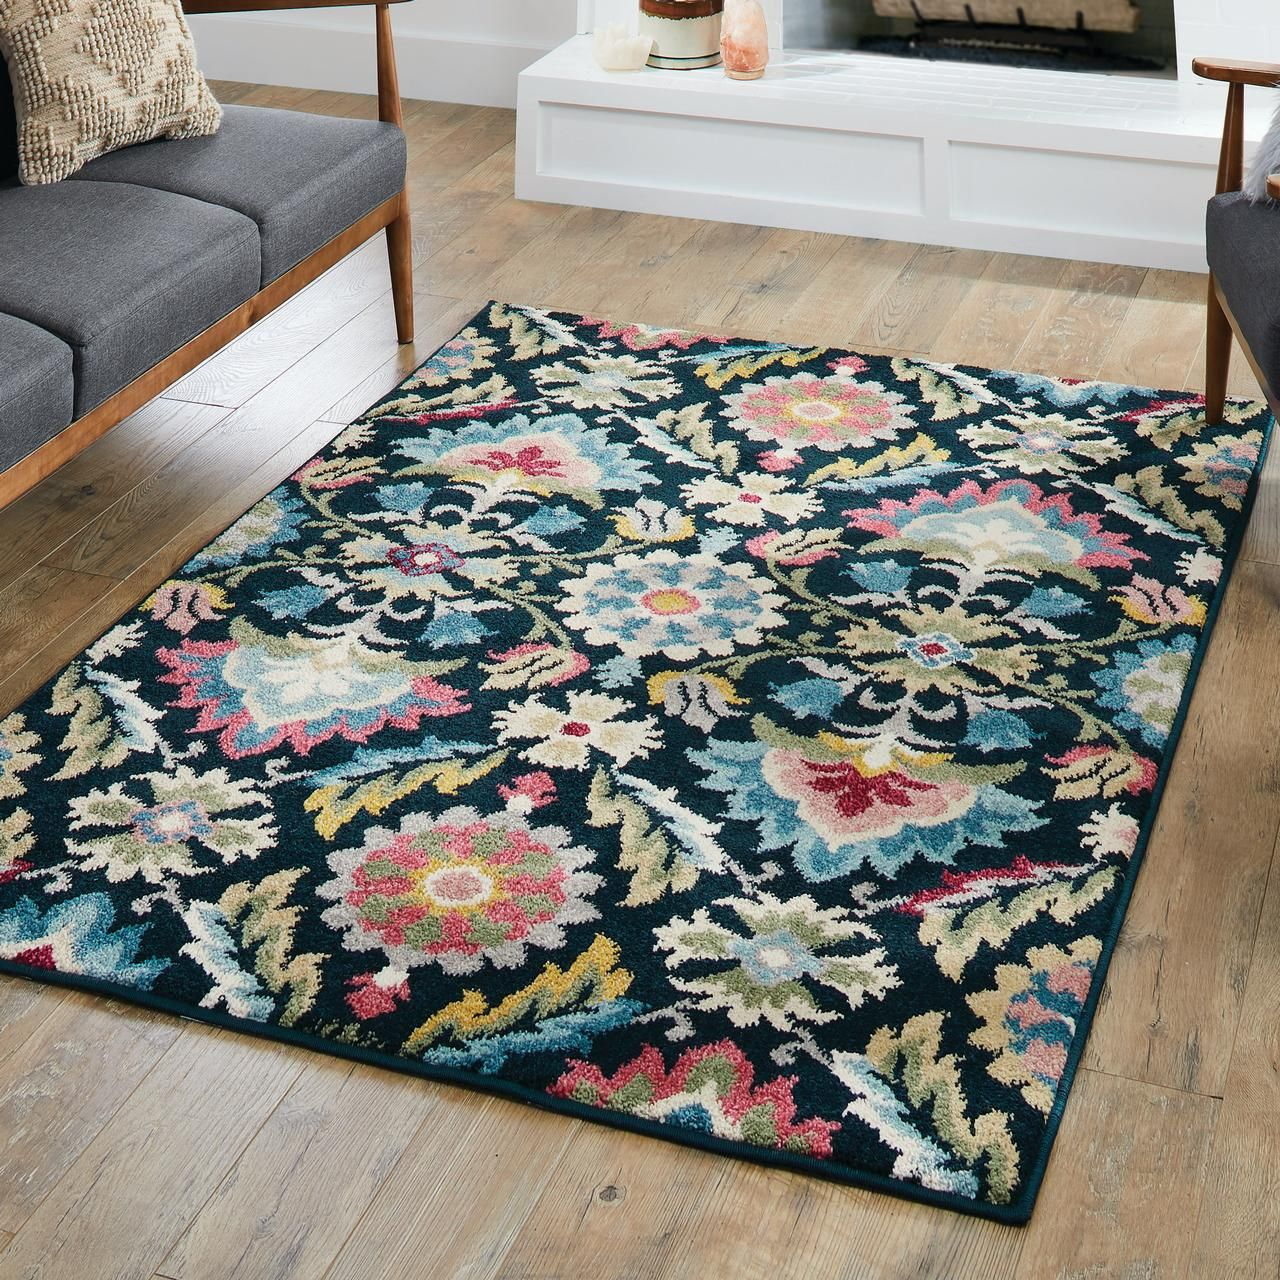 Home In 2020 Area Rugs Home Decor Styles Decor